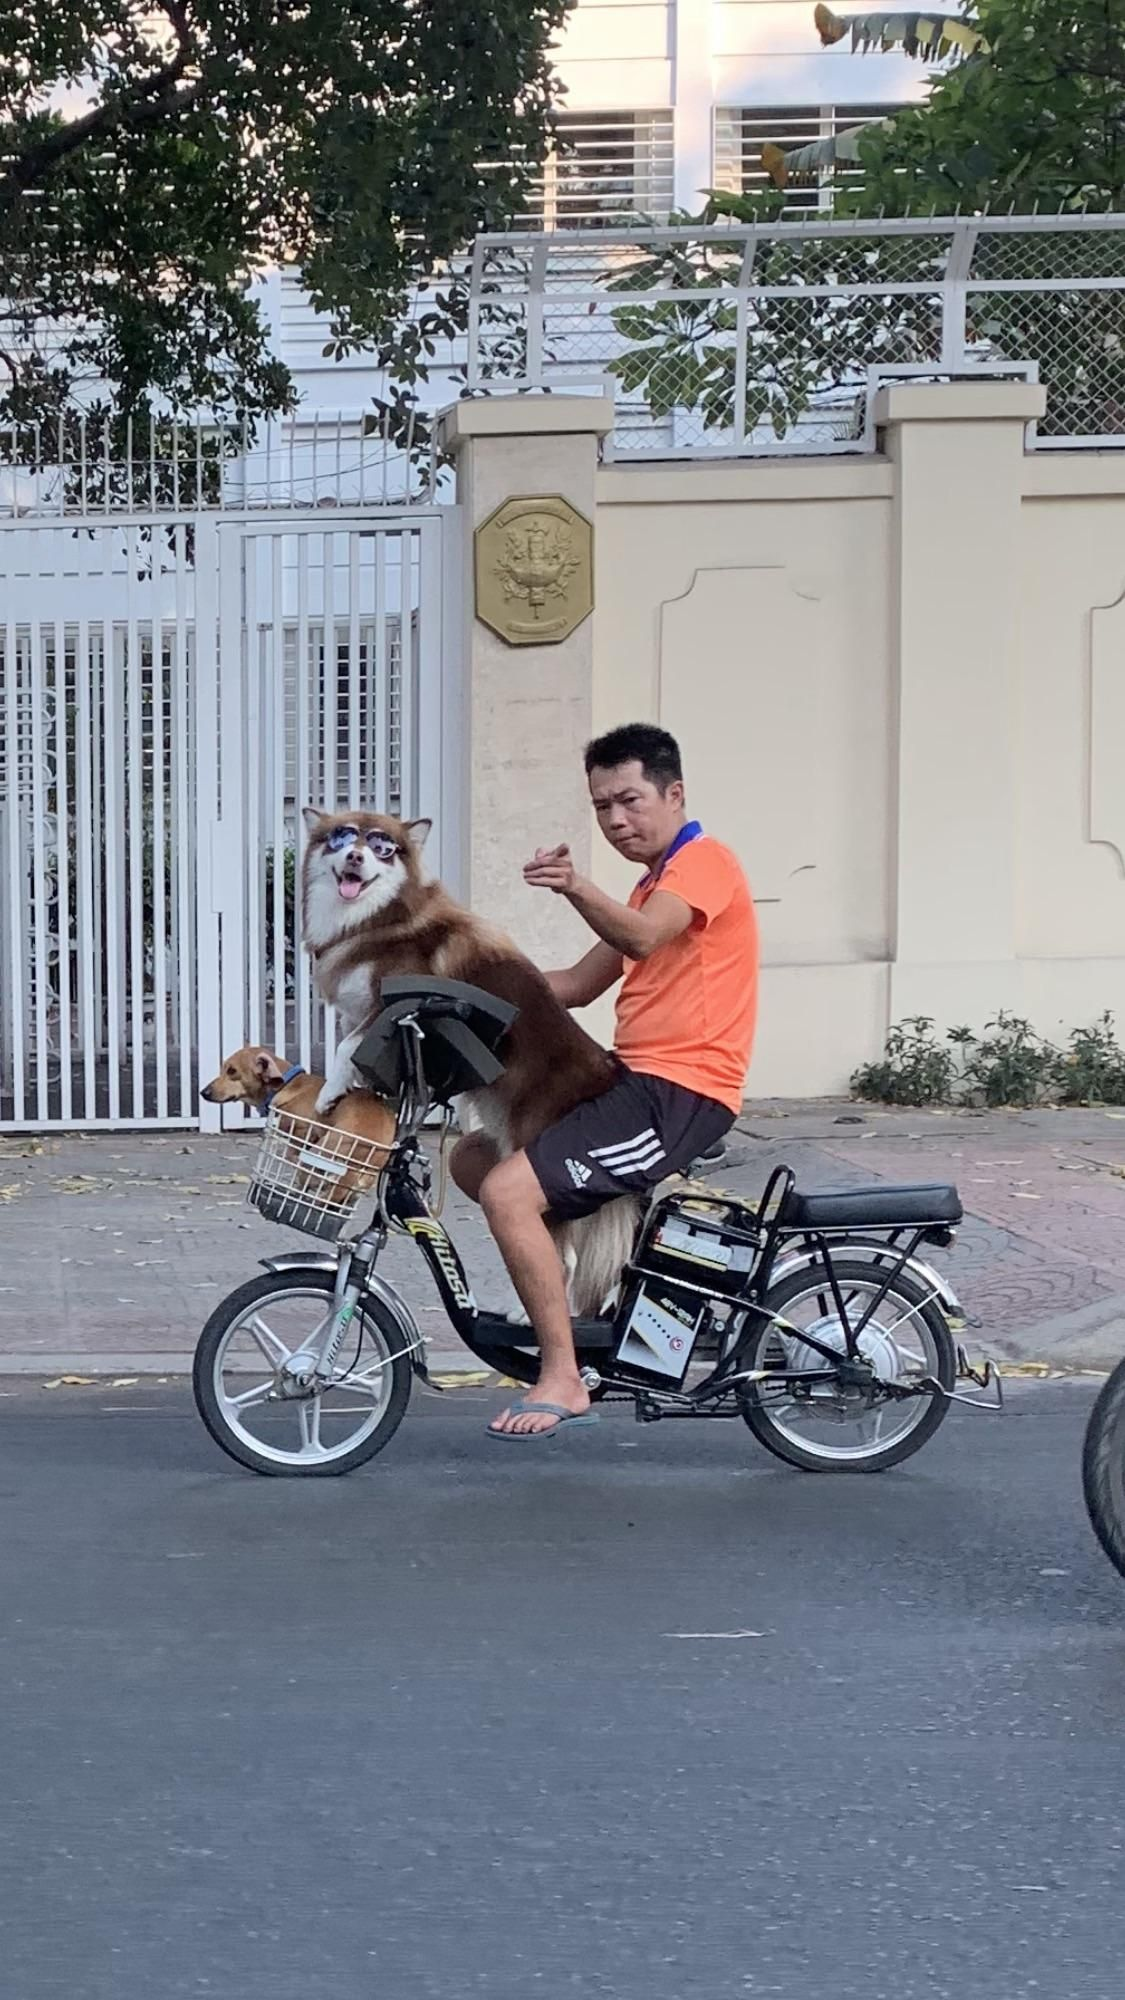 Riding through Vietnam when suddenly